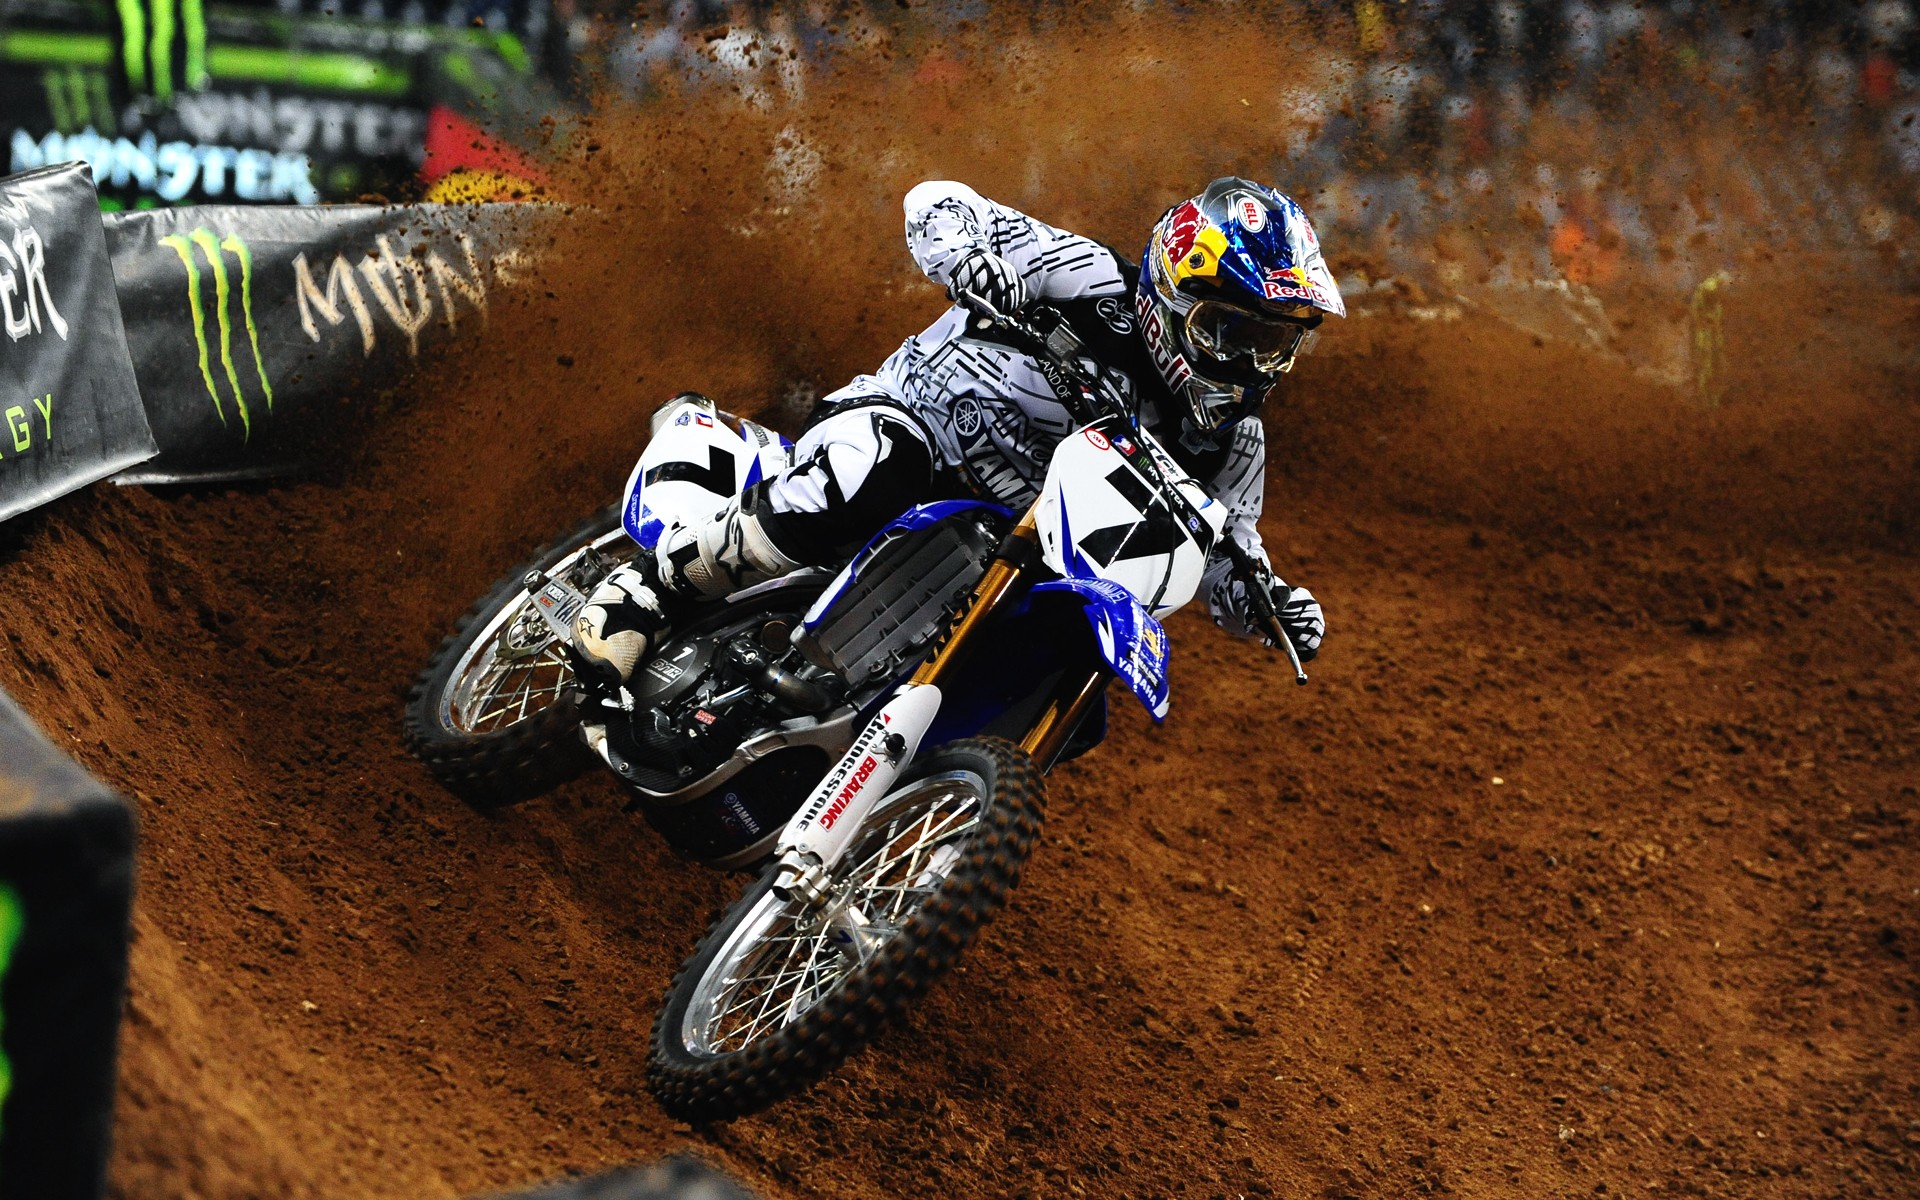 Alpha Coders Wallpaper Abyss Deporte Motocross 316267 1920x1200